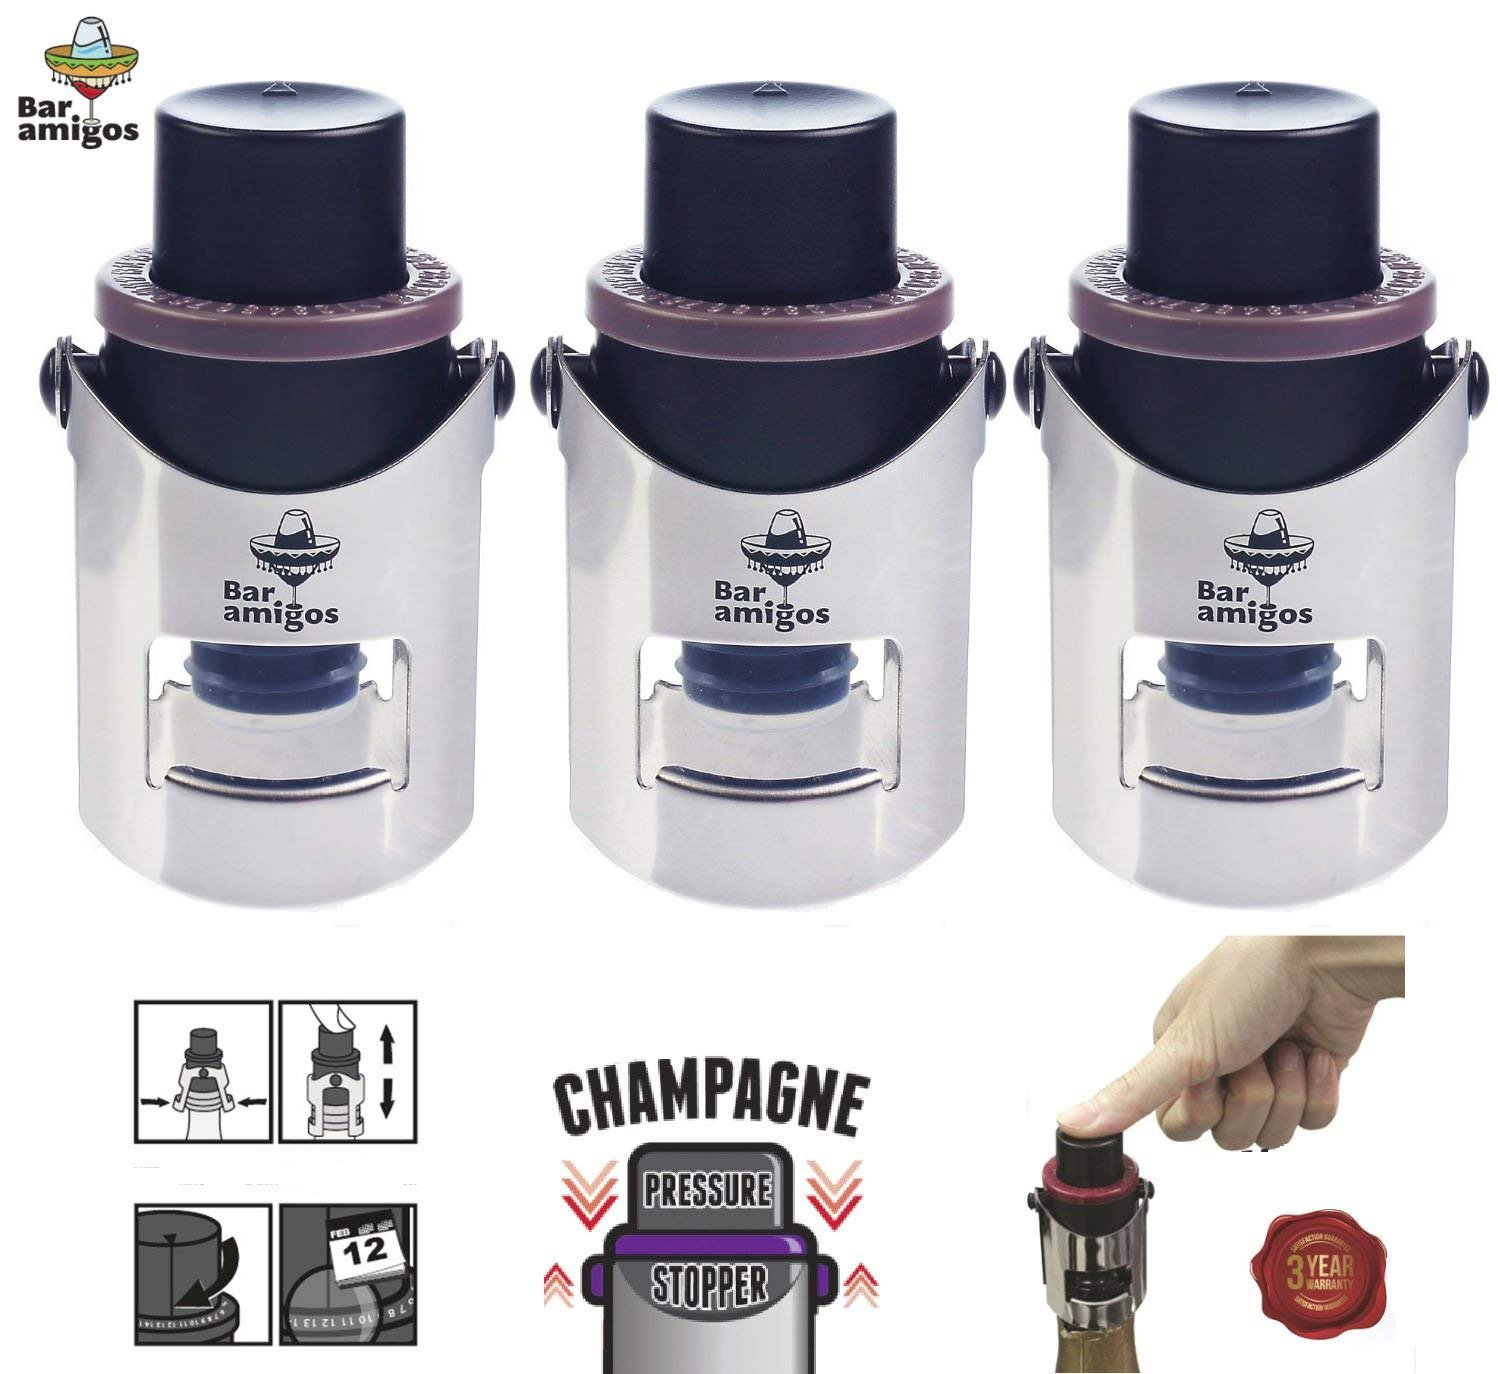 Bar Amigos Triple Value Pack Of 3 Champagne Pressure Stopper - Purple Grey Red Set Saver Pump Sealer Switch To Keep Your Bottle Of Sparkling Wine Champaign Fresh For 7 Days